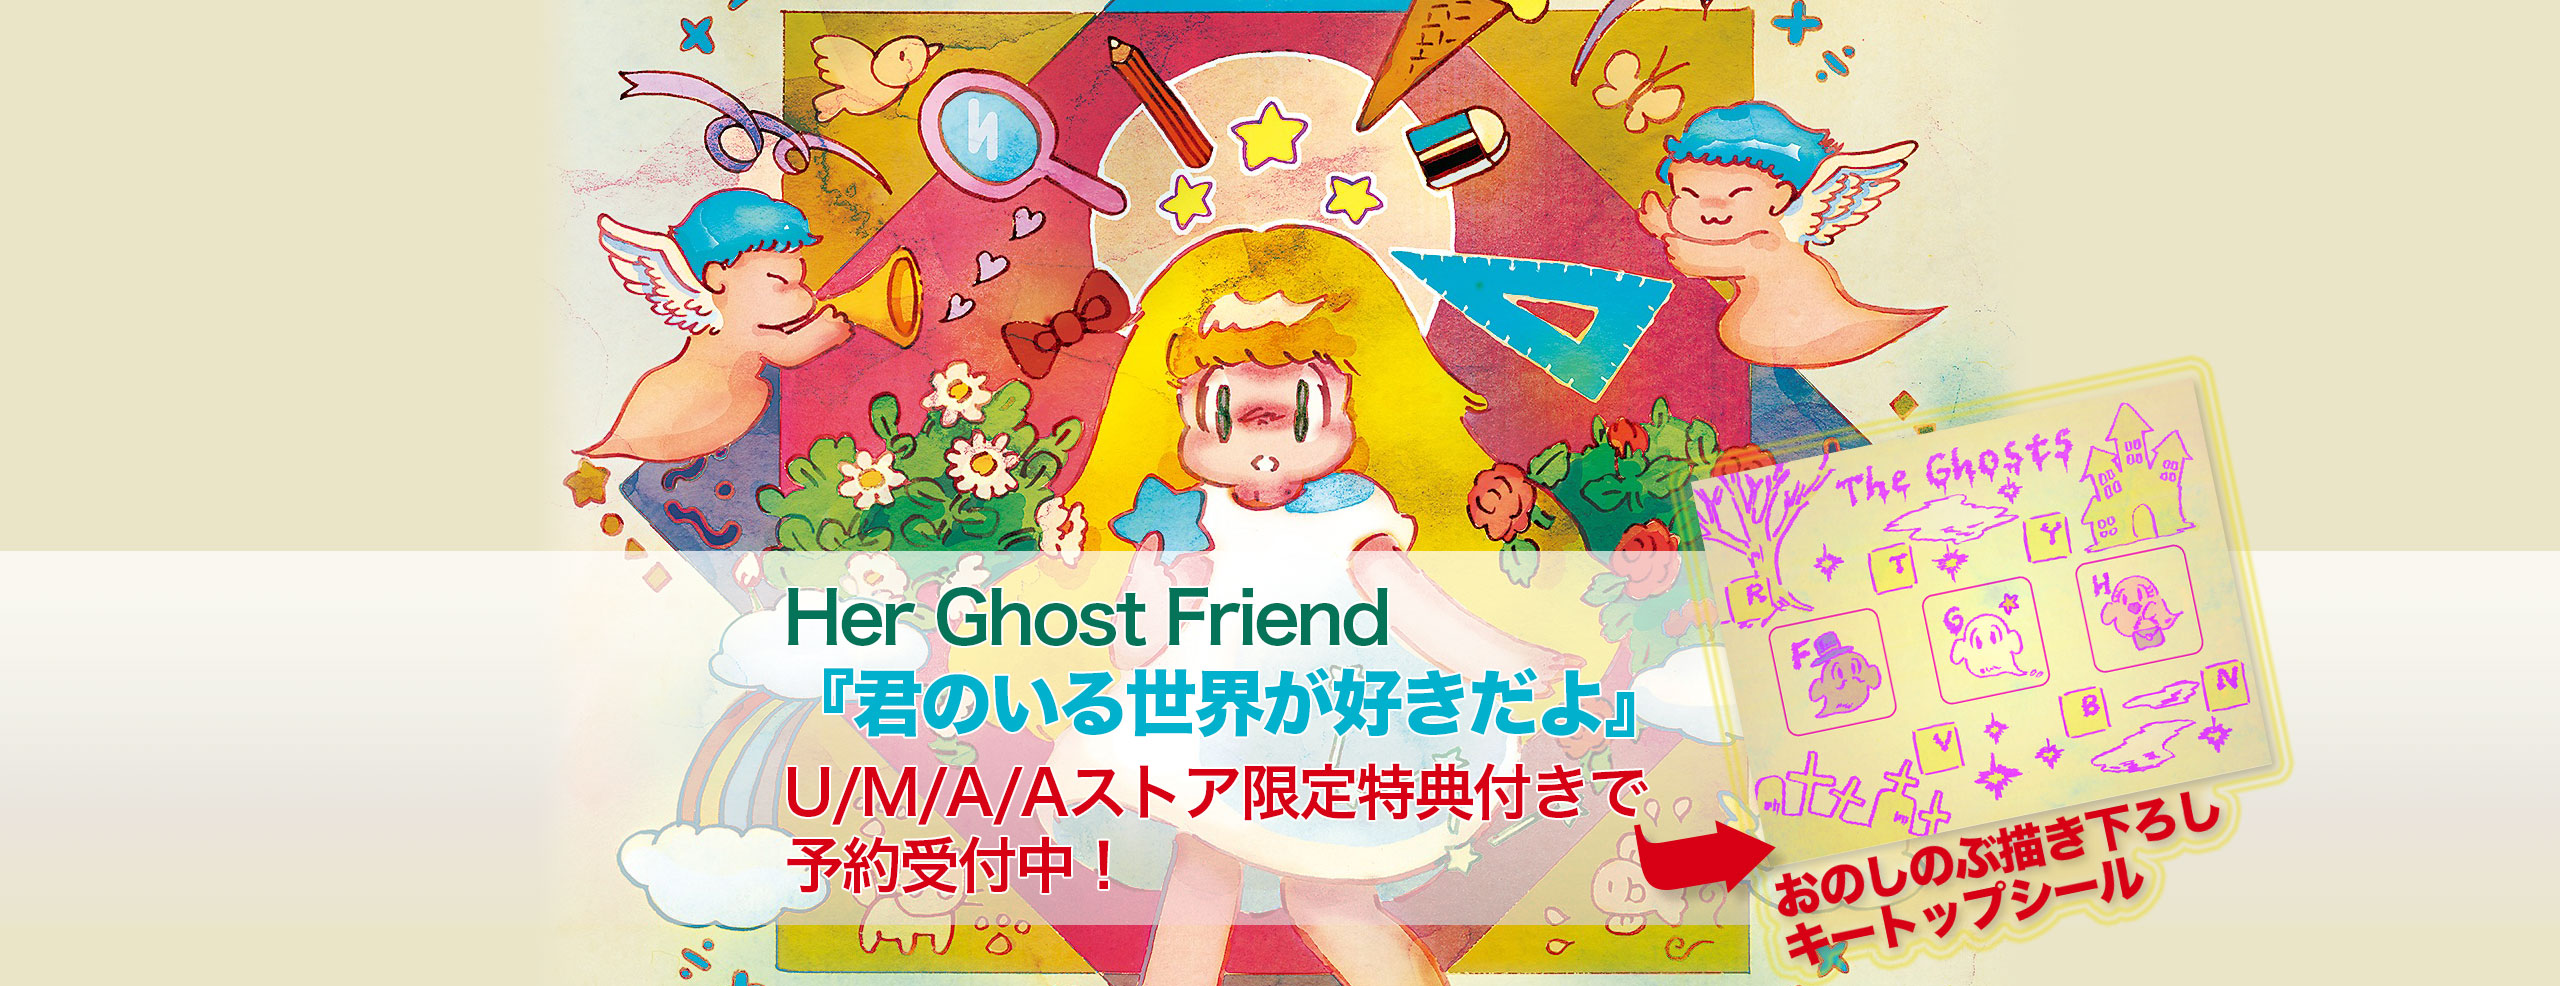 Her Ghost Friend『君のいる世界が好きだよ』U/M/A/Aストア限定特典付で受付中